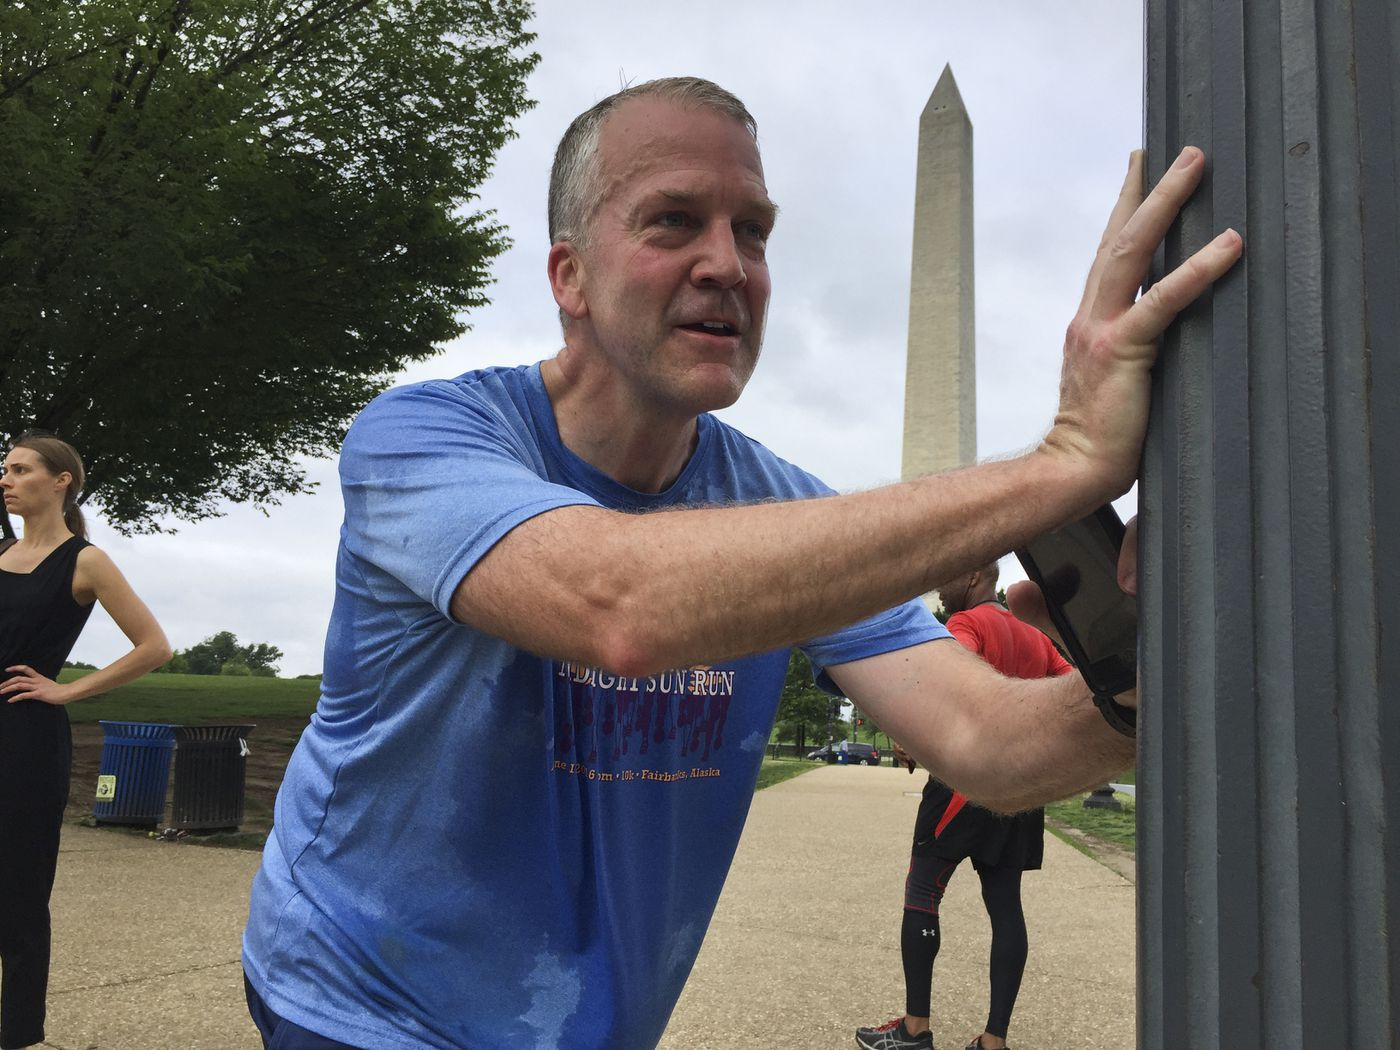 Sen. Dan Sullivan stretches as he waits for a traffic light to change while on morning run in Washington, D.C., on June 19, 2019. (Marc Lester / ADN)